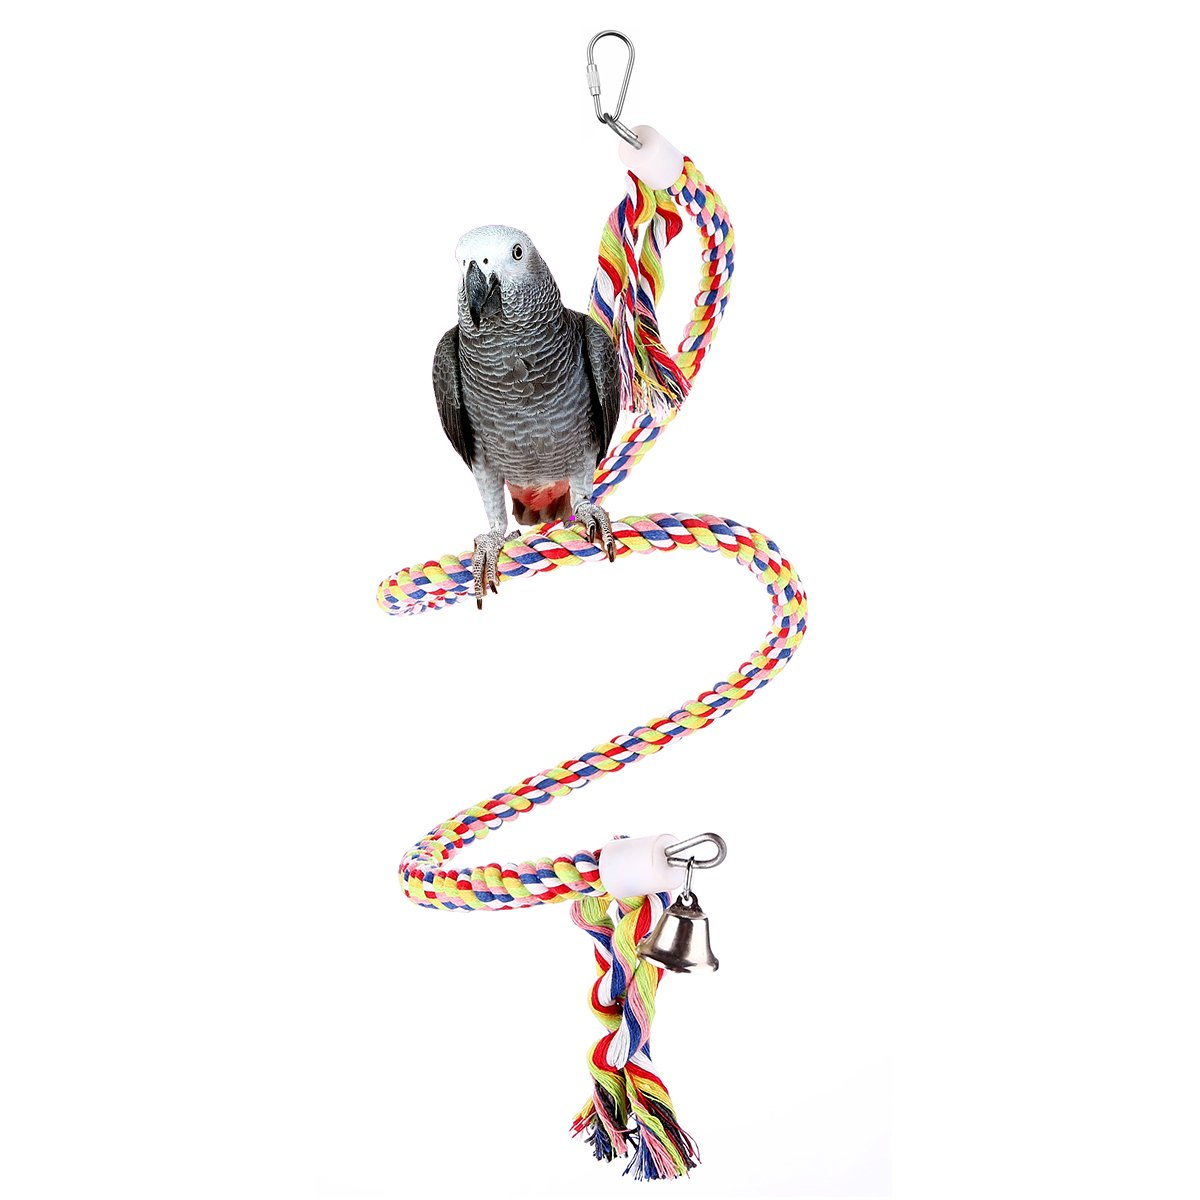 Bird Rope Toys49 inch Long Parred Bungees Rope ToysBvanki Large Medium and Small Parred Toys Spiral Standing Toys (Medium 49 inch)